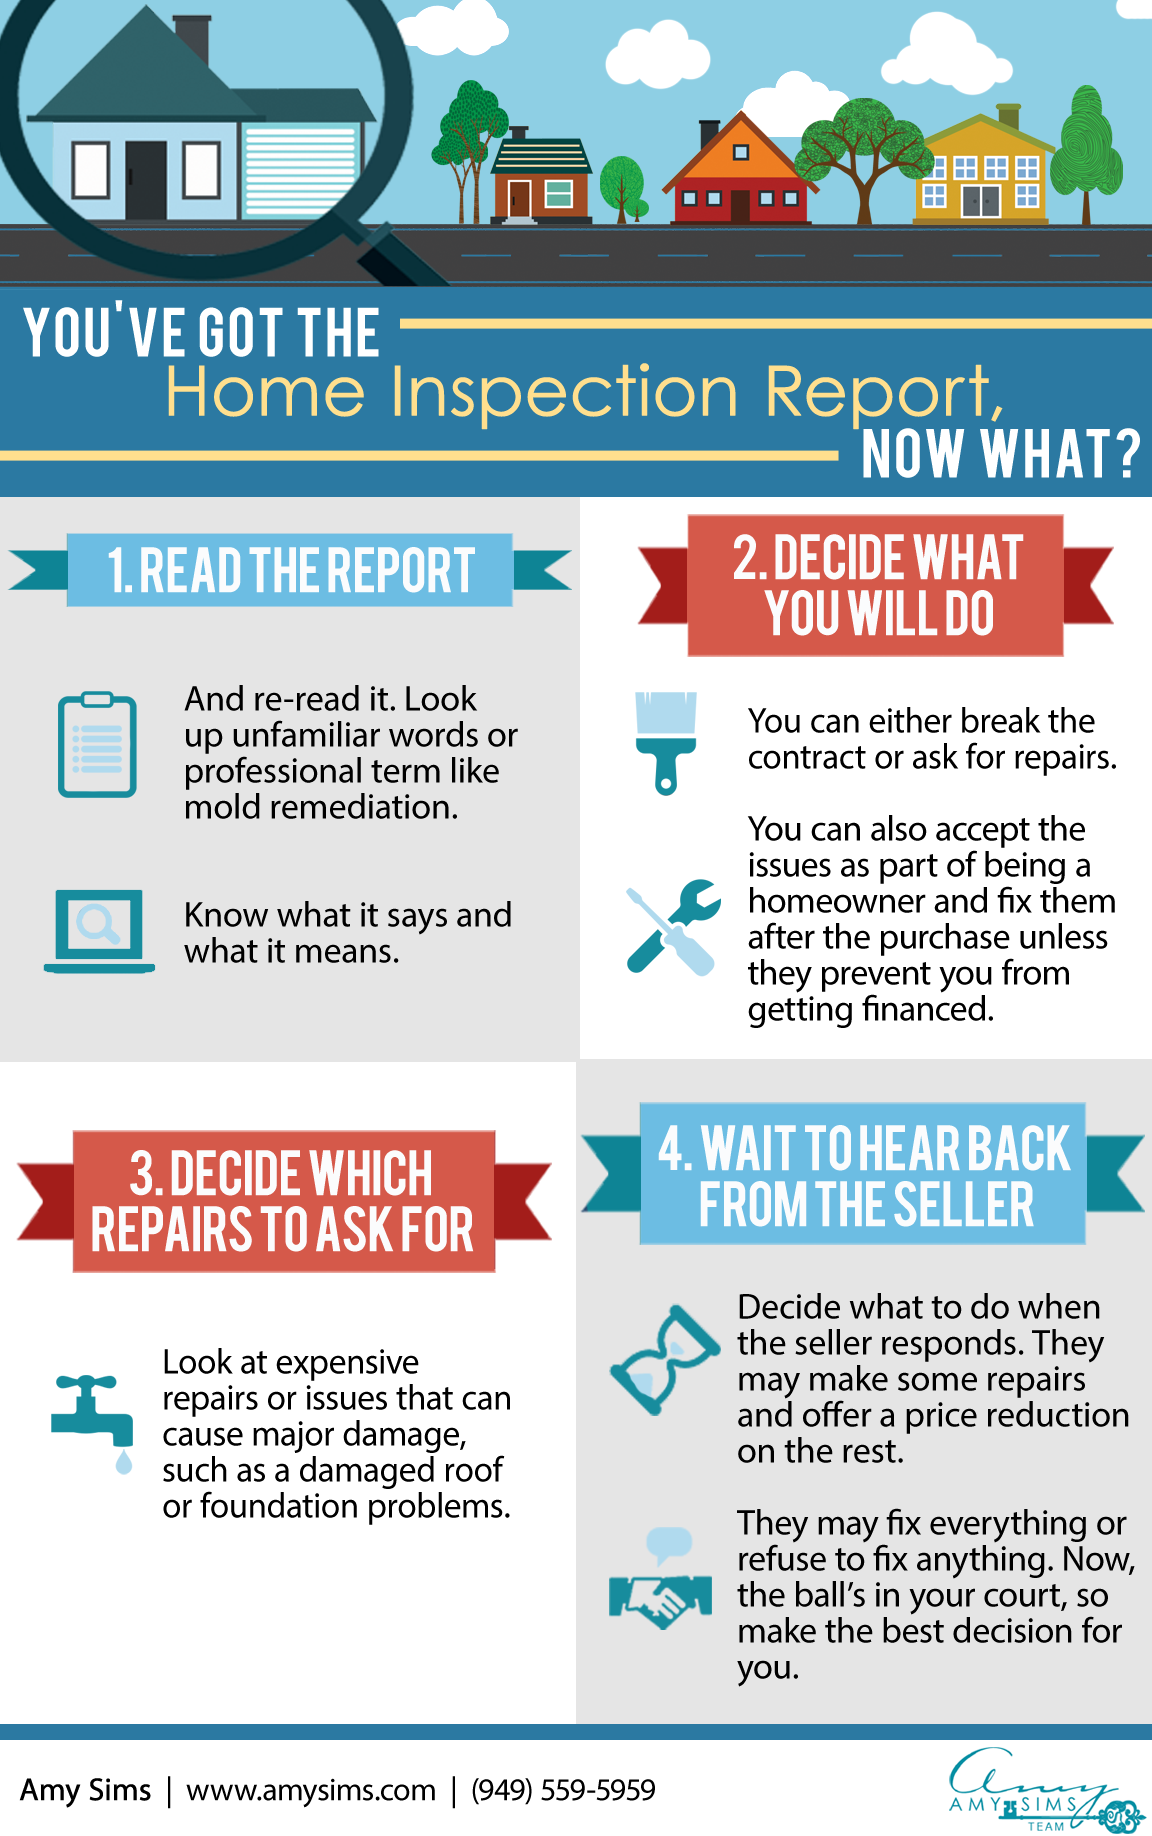 You Have Got the Home Inspection Report Image